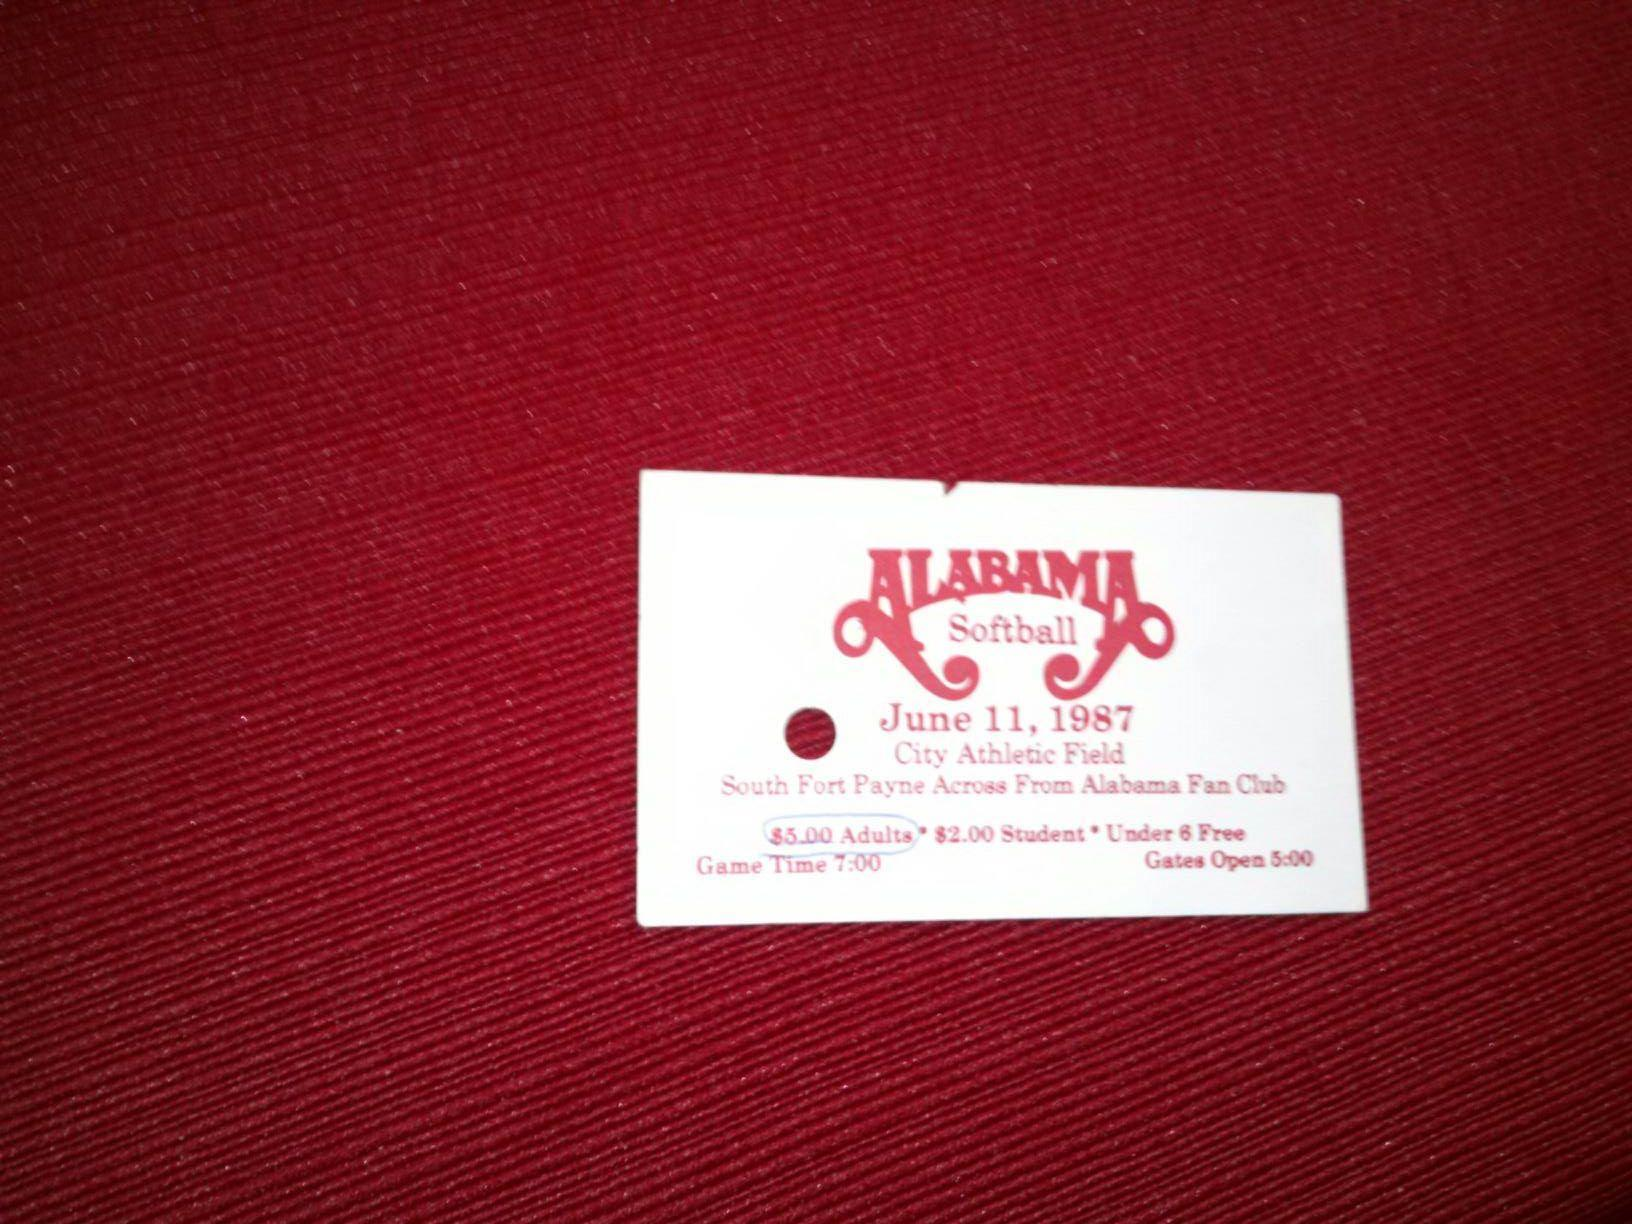 Alabama Softball ticket